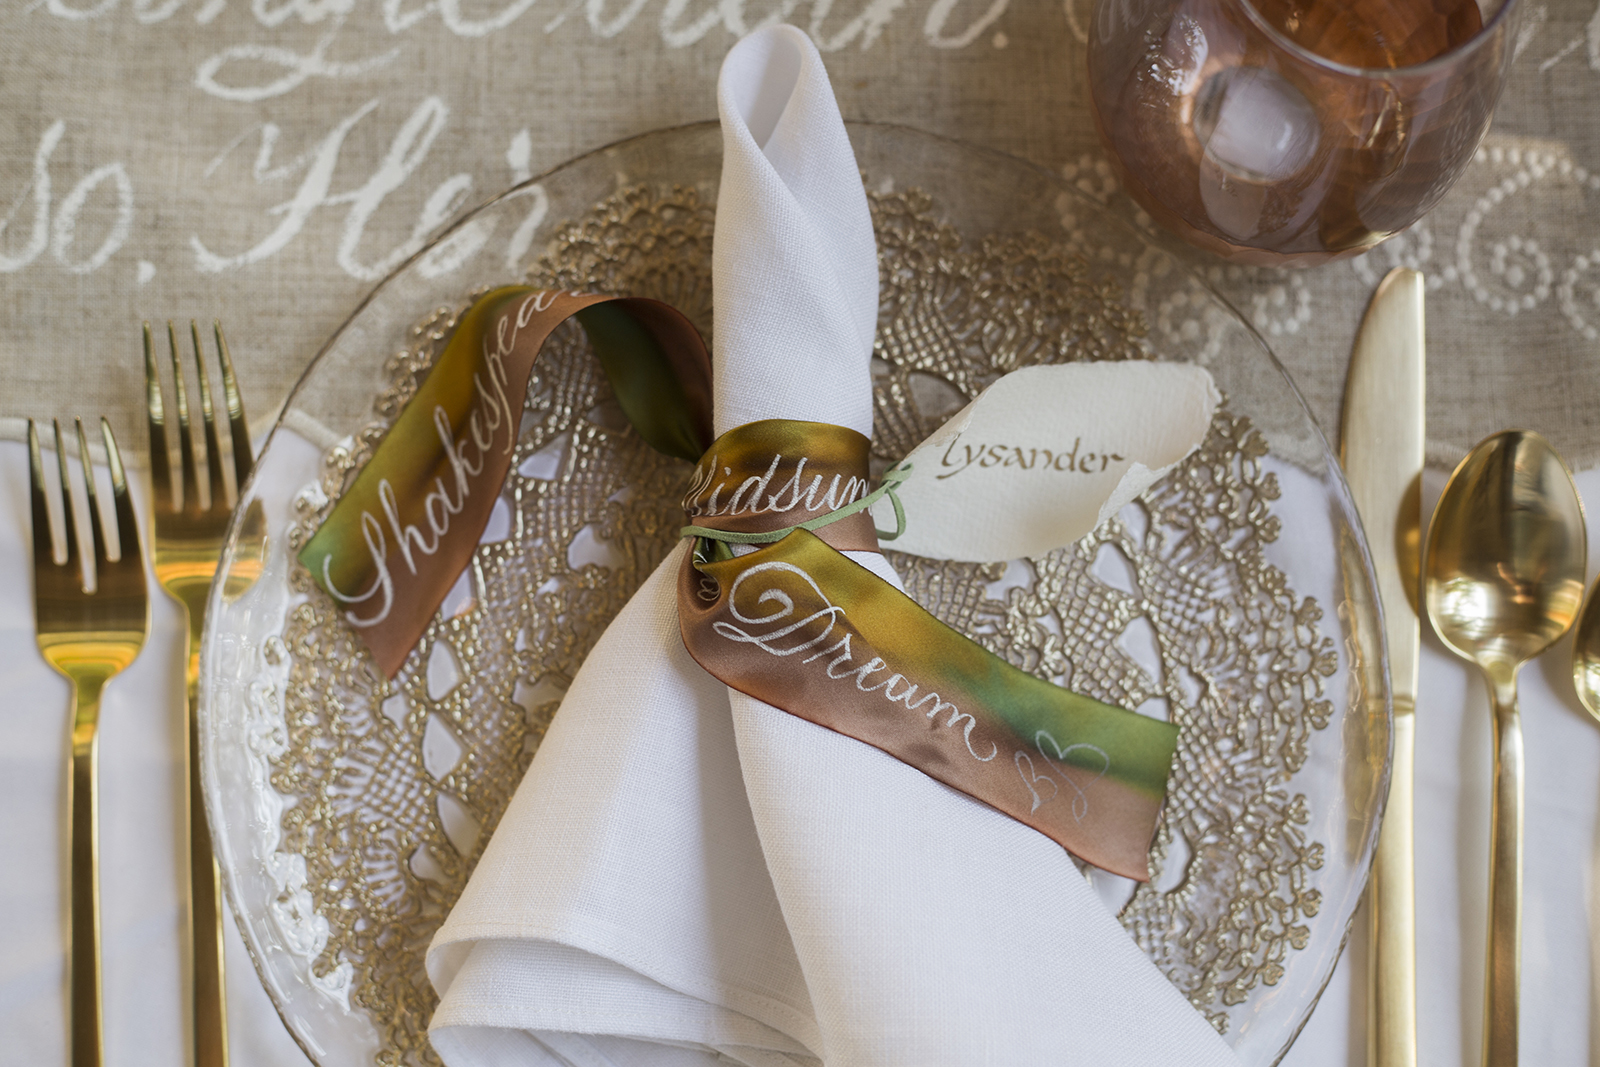 Silk ribbons and place card scroll